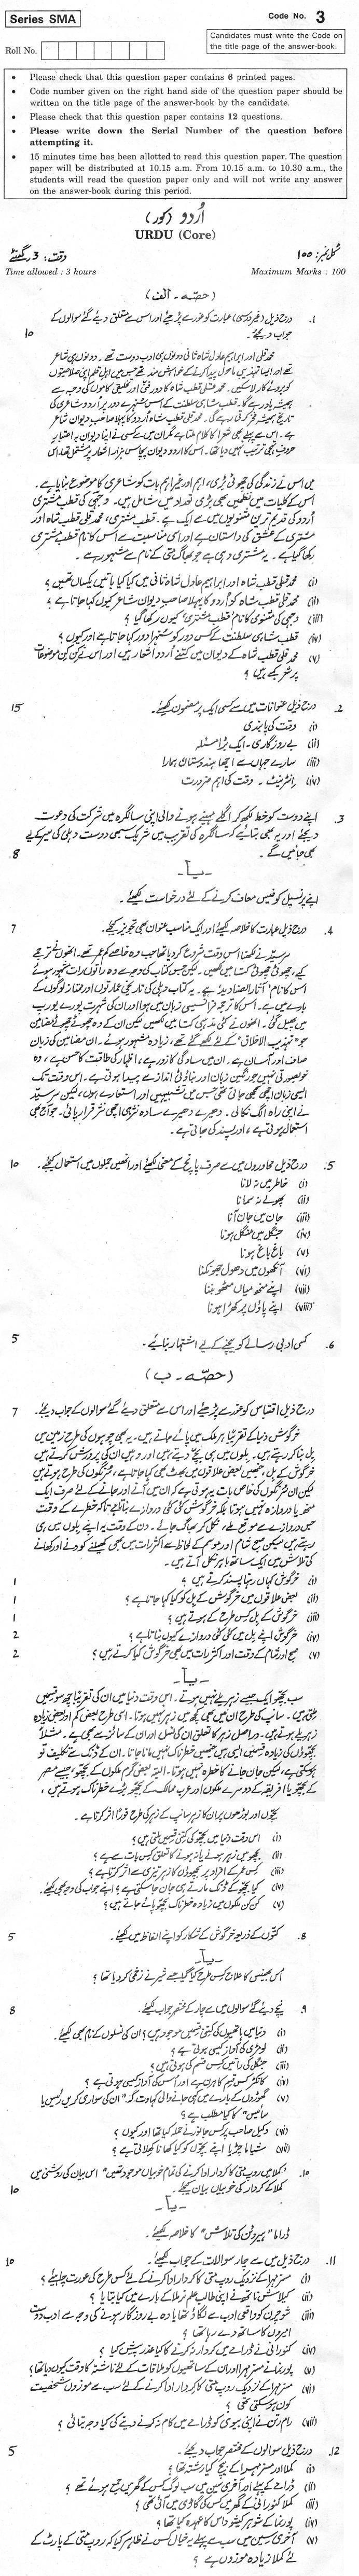 CBSE Class XII Previous Year Question Paper 2012 Urdu (Core)